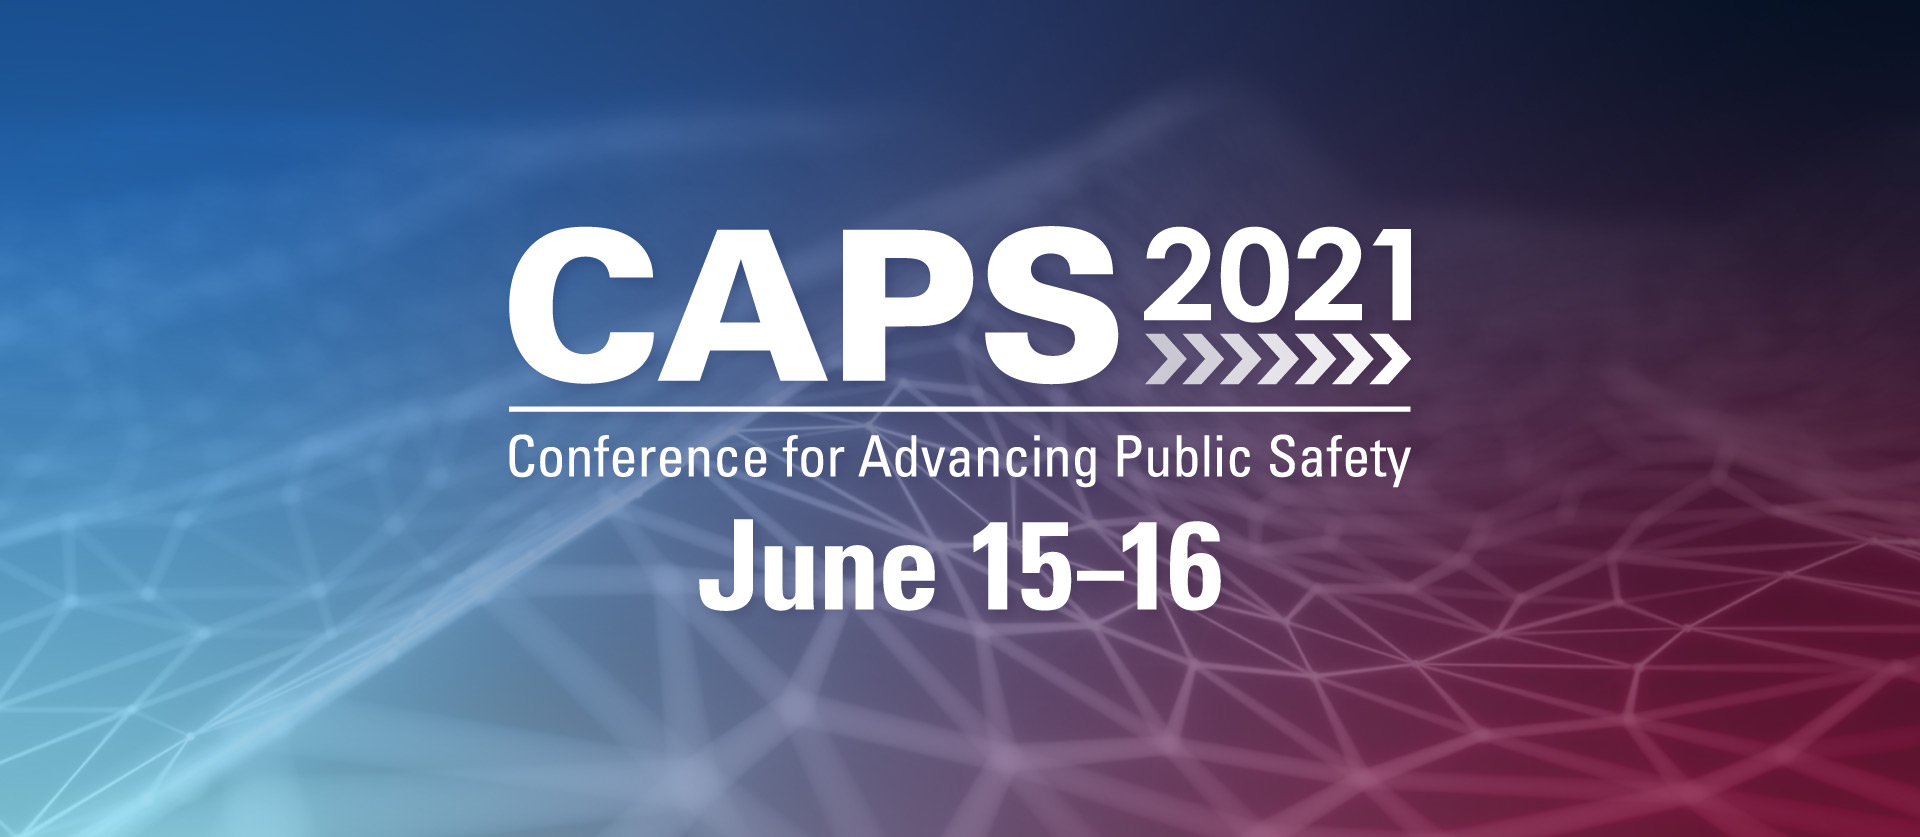 CAPS 2021 Landing Page Header with Date